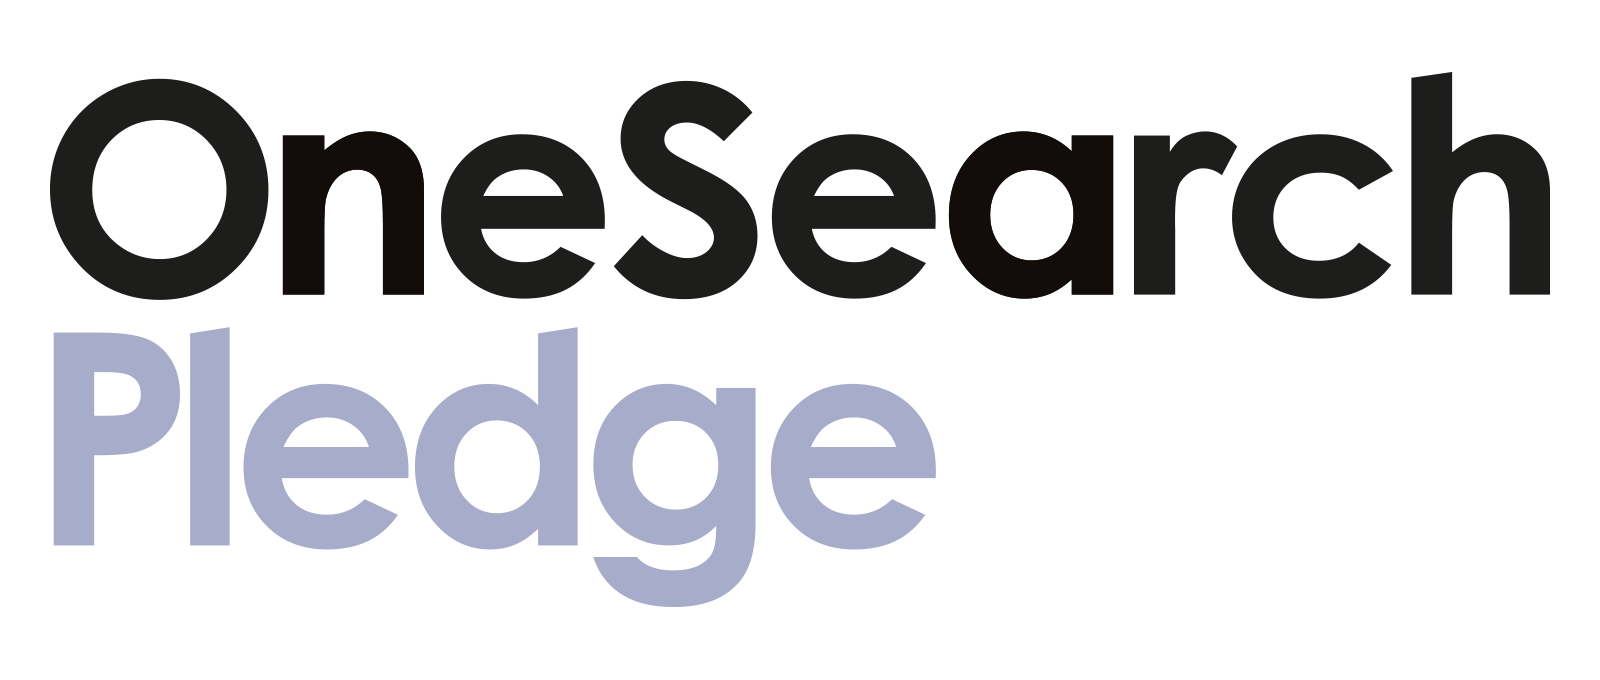 OneSearch Pledge header image